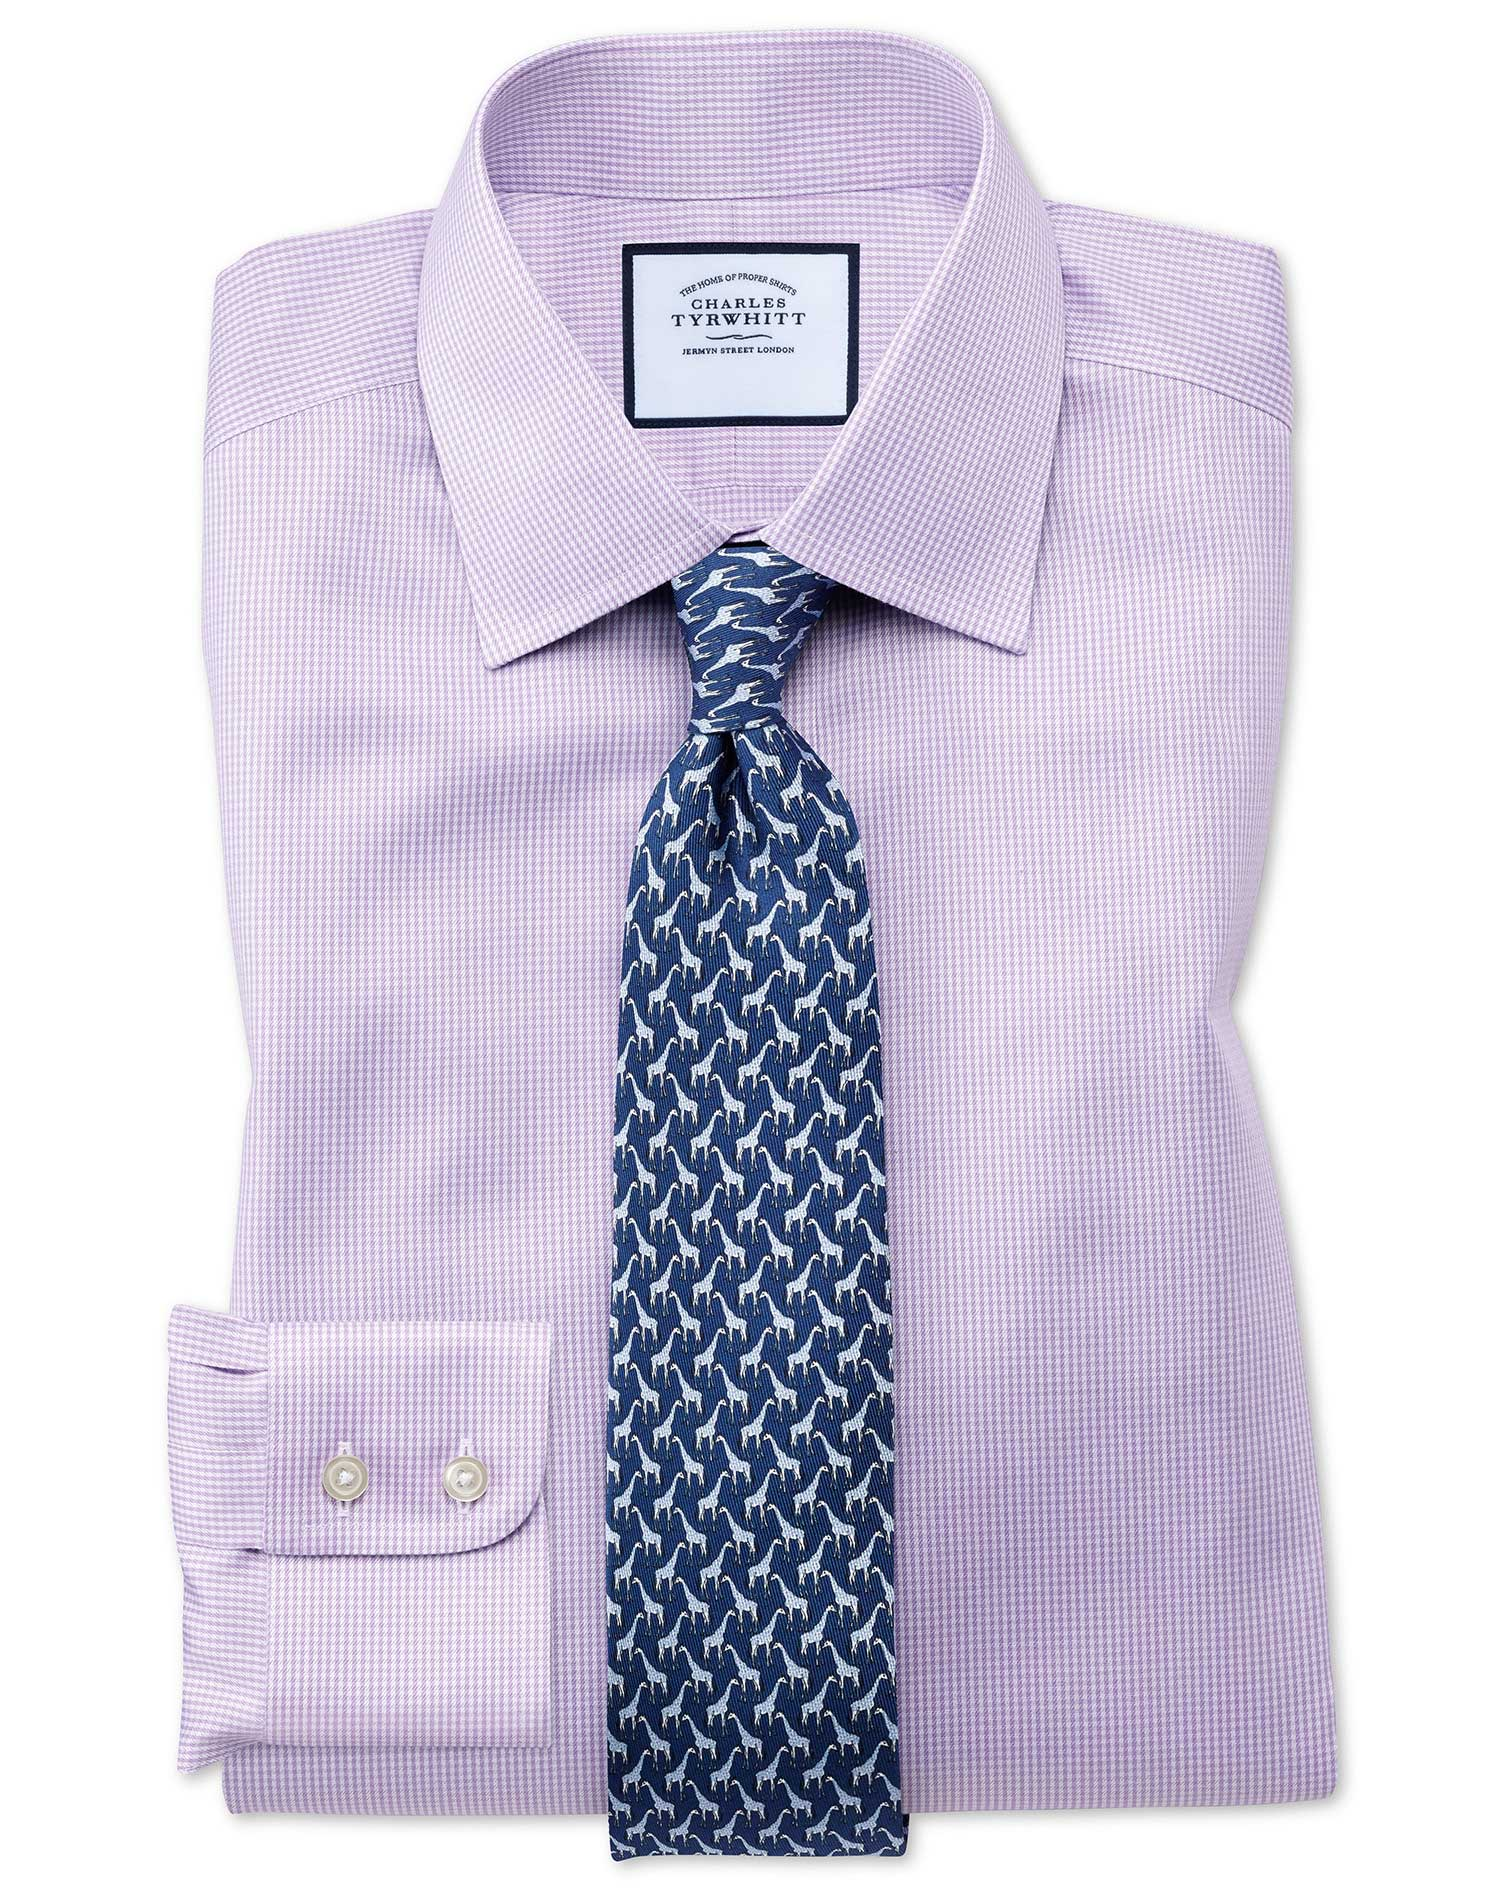 Cotton Slim Fit Non-Iron Lilac Puppytooth Shirt